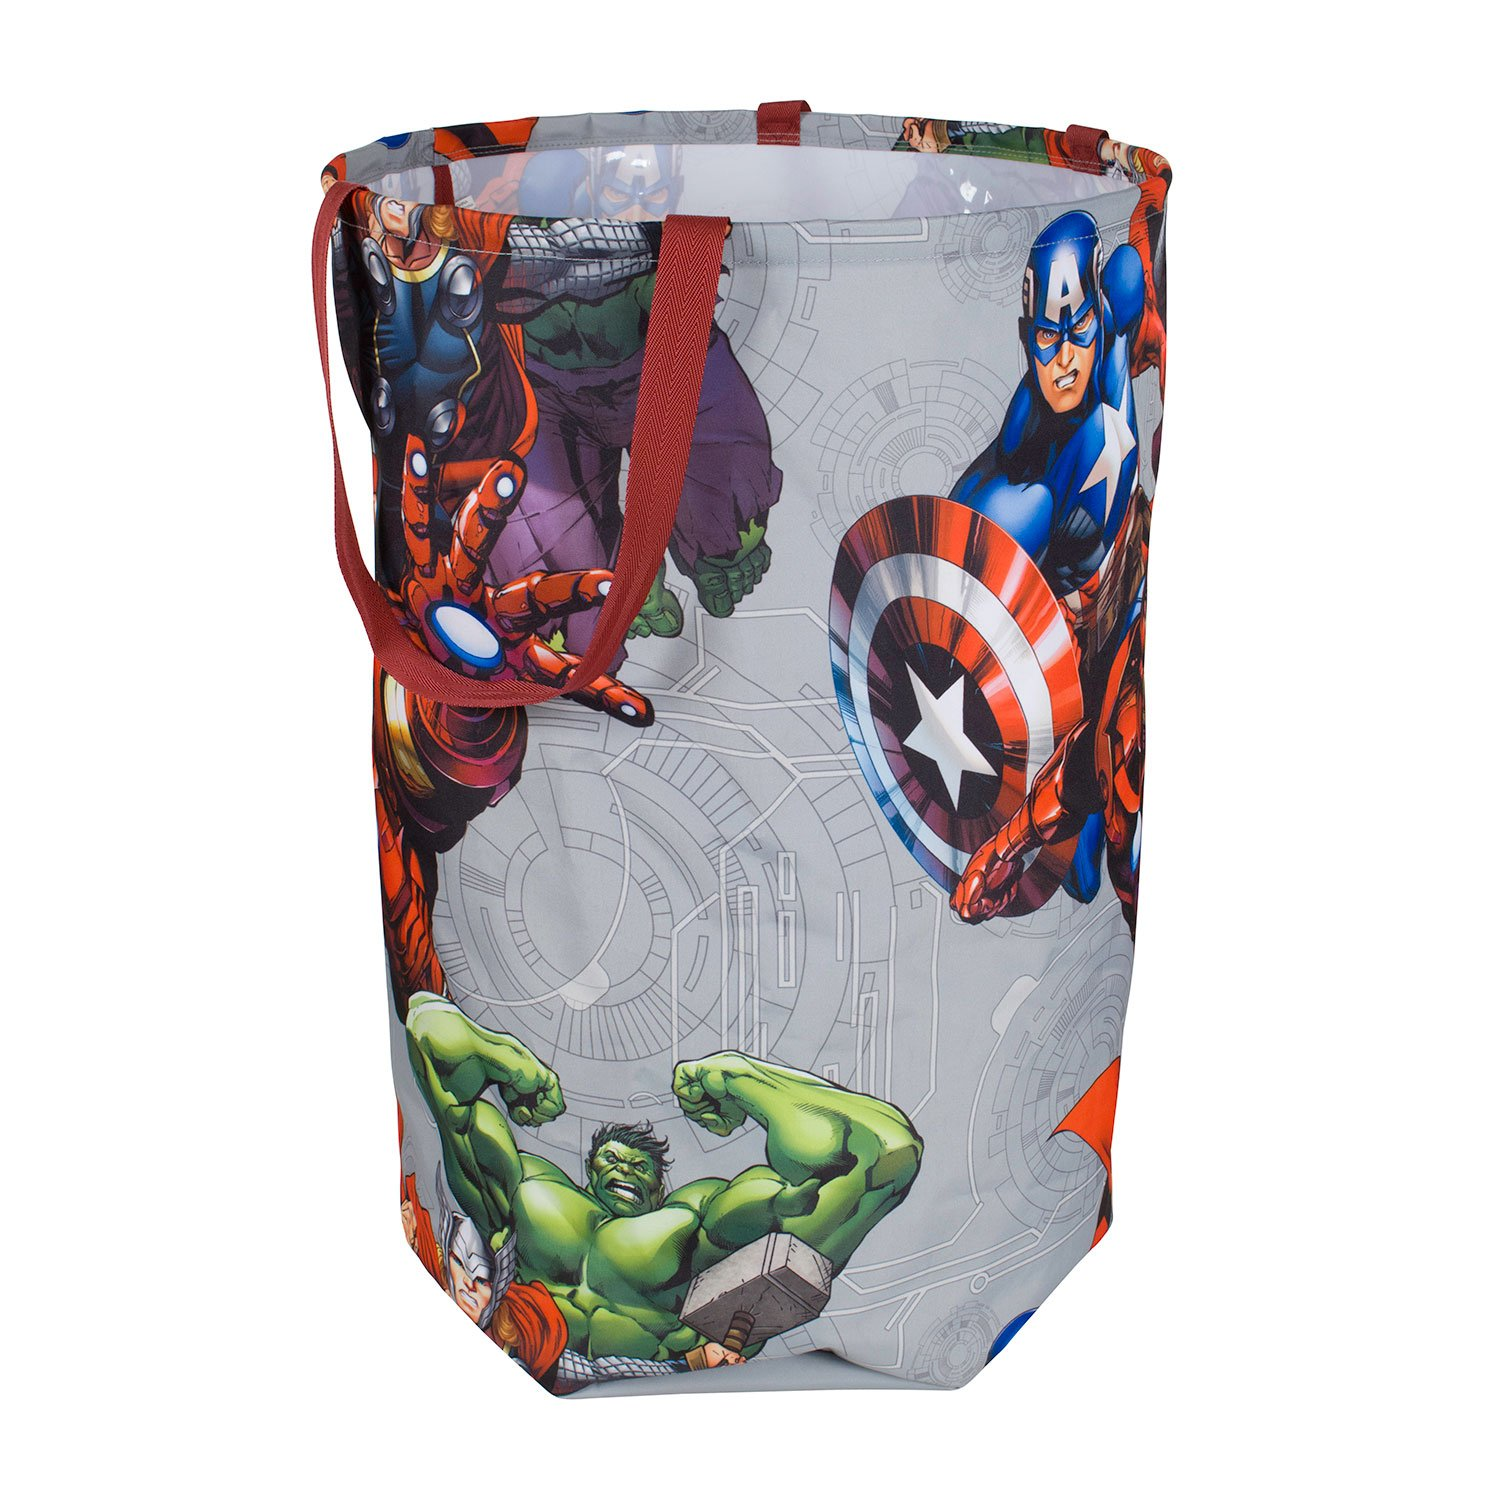 Avengers Large Laundry Basket